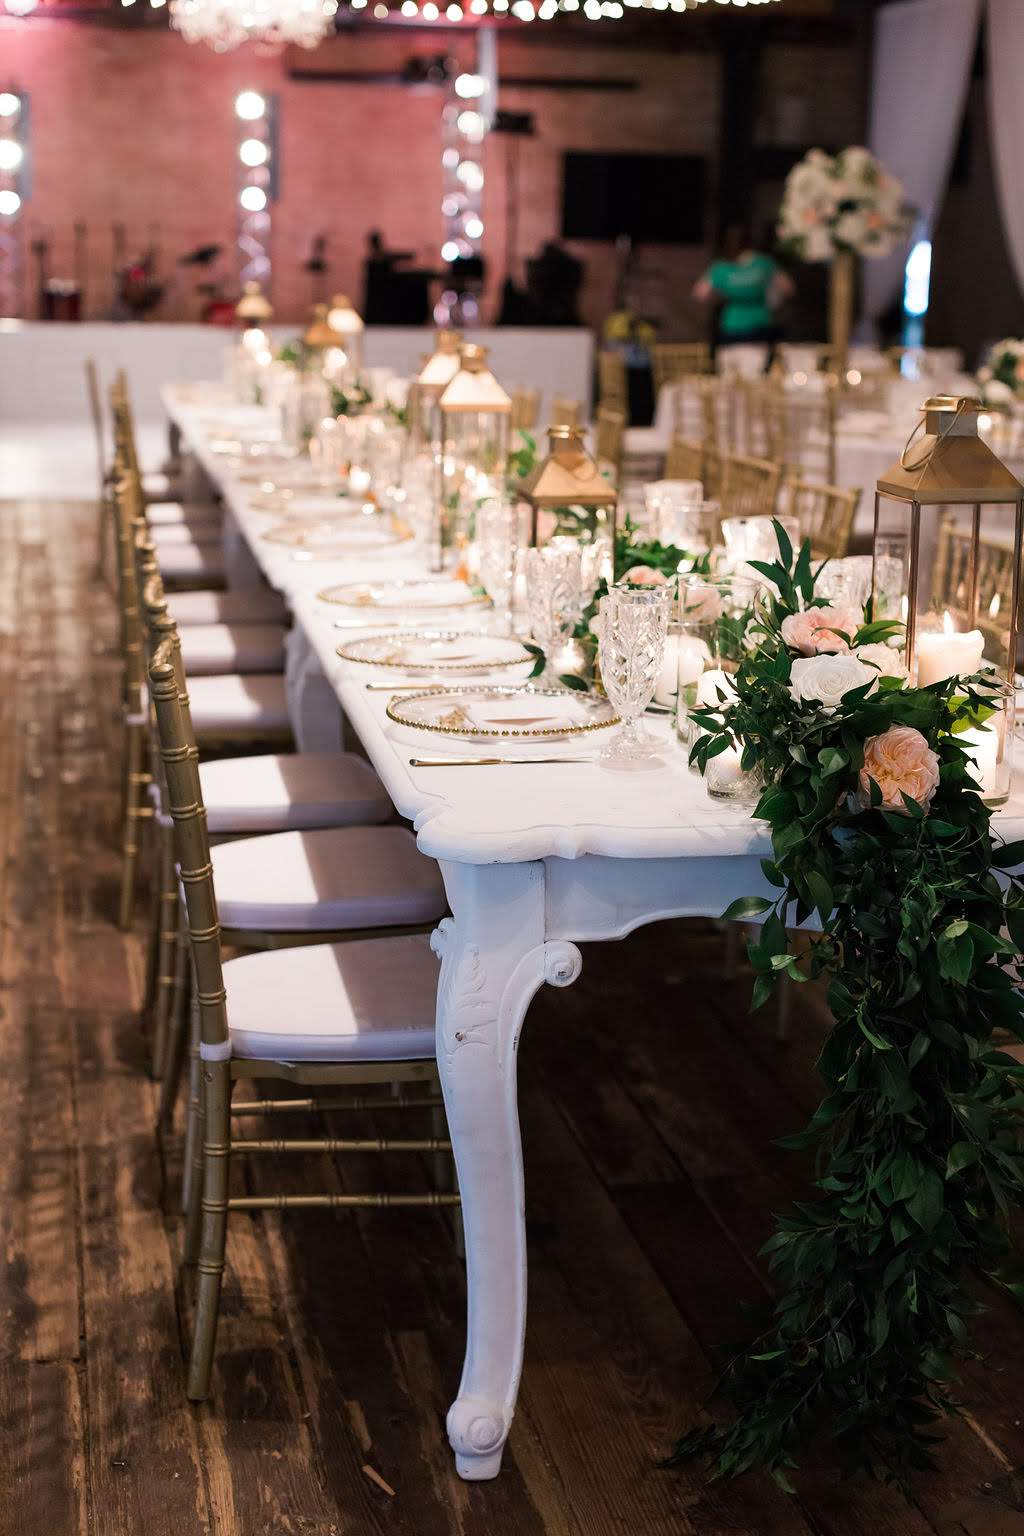 Head table with garland and lanterns.